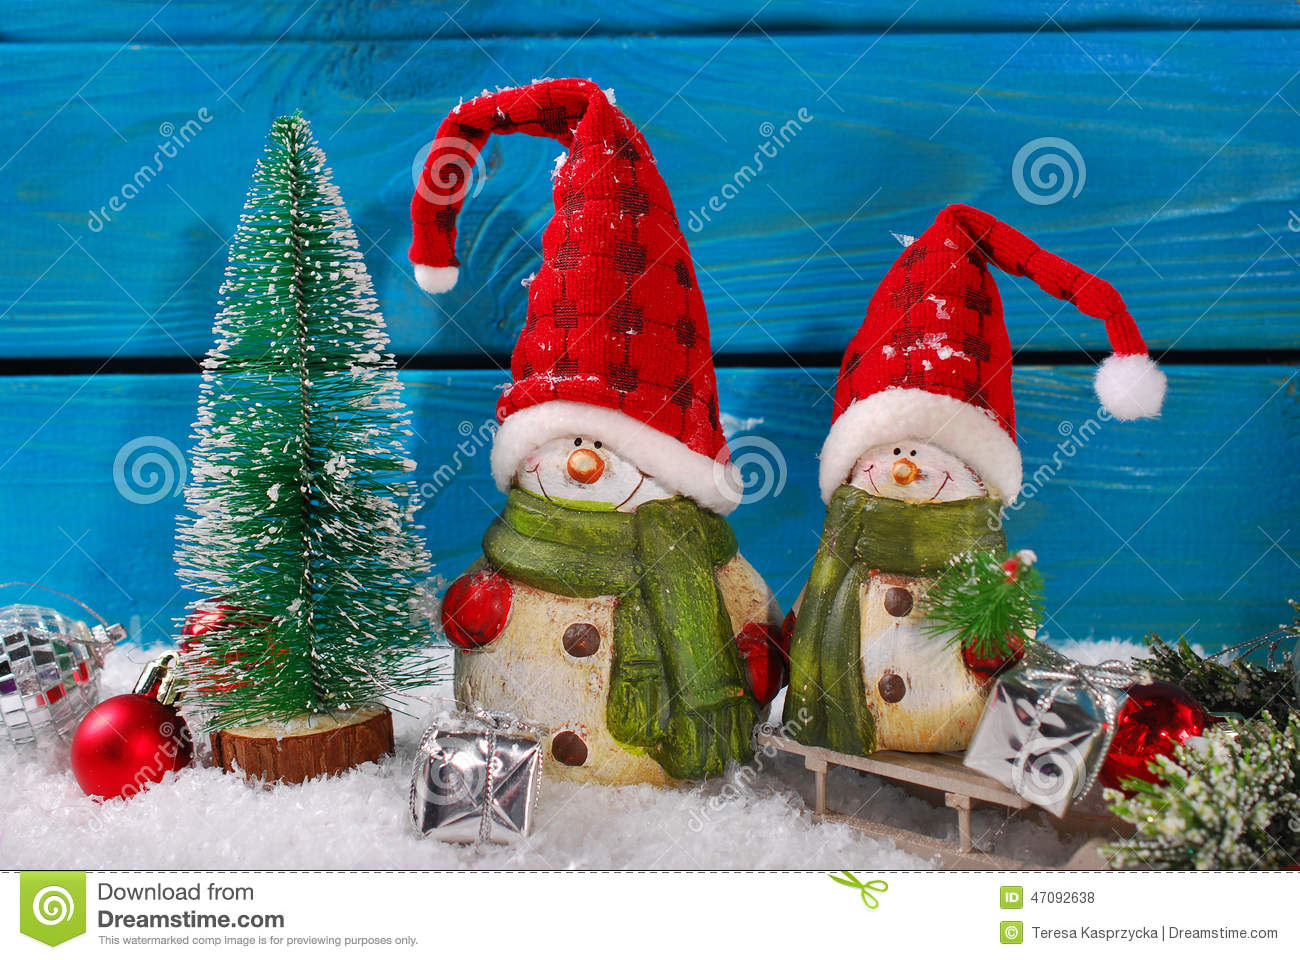 Christmas Decoration With Two Funny Santa Claus Figurines On Blue Wooden Background